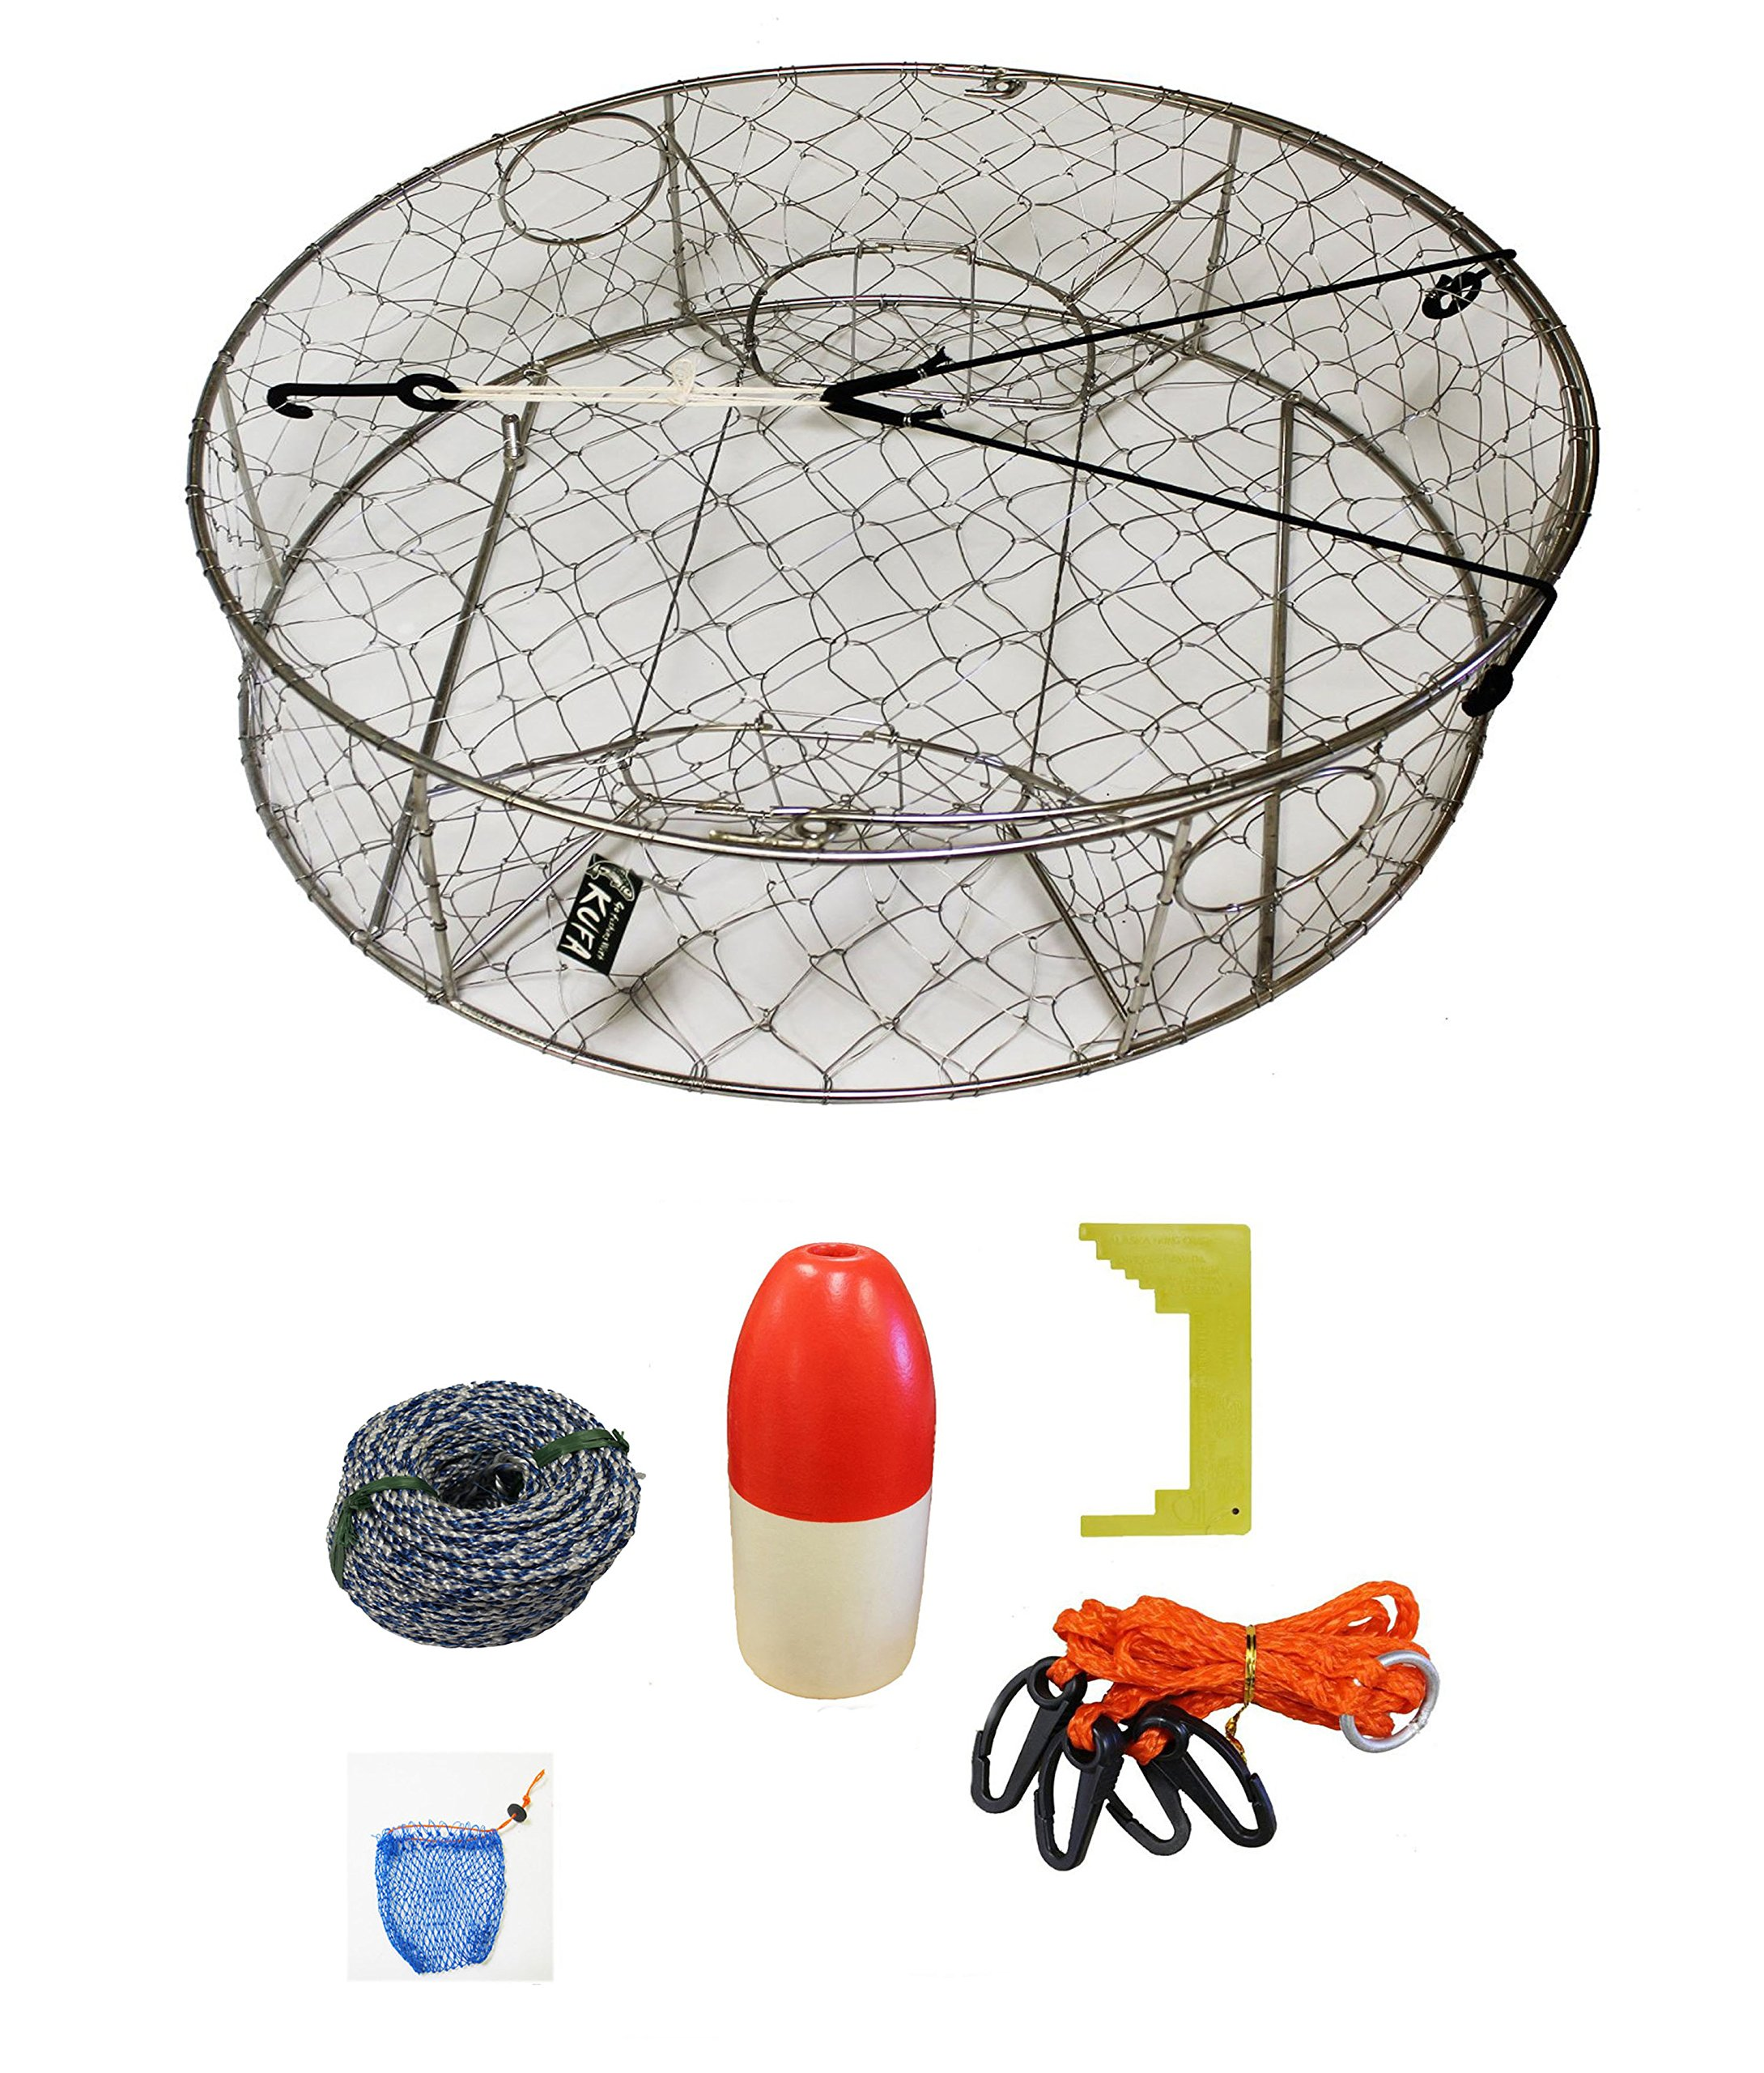 KUFA Stainless Steel crab trap with zinc anode & accessory kit (100' Non-Lead sinking line,Clipper,Harness,Bait Bag & 14'' Float) CT100+CAS3+ZIN1 by KUFA Sports